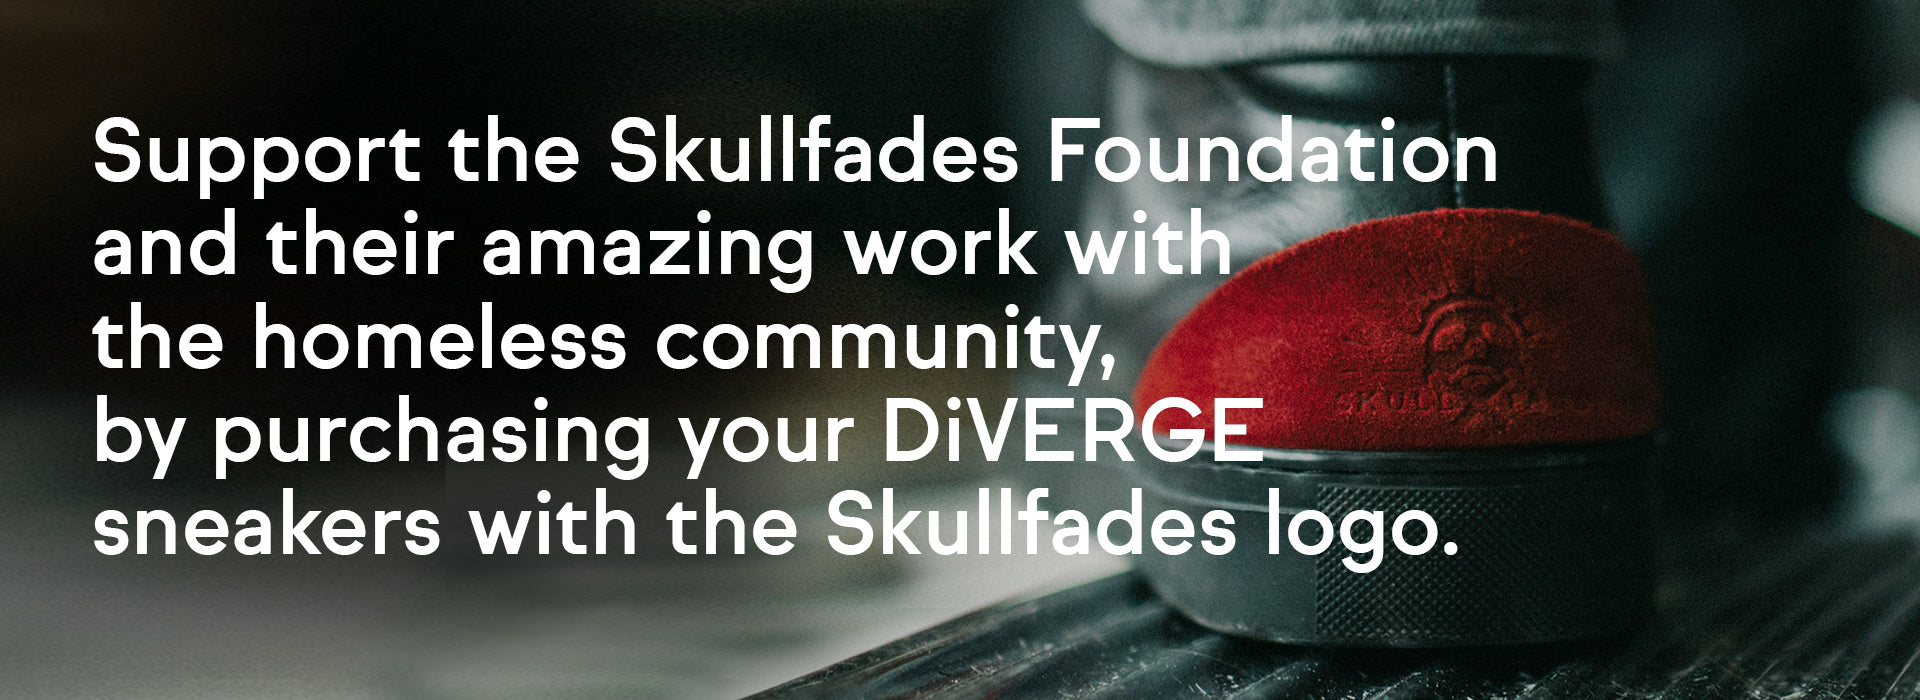 Support the Skullfades Foundation by purchasing your DiVERGE trainers with the Skullfades logo